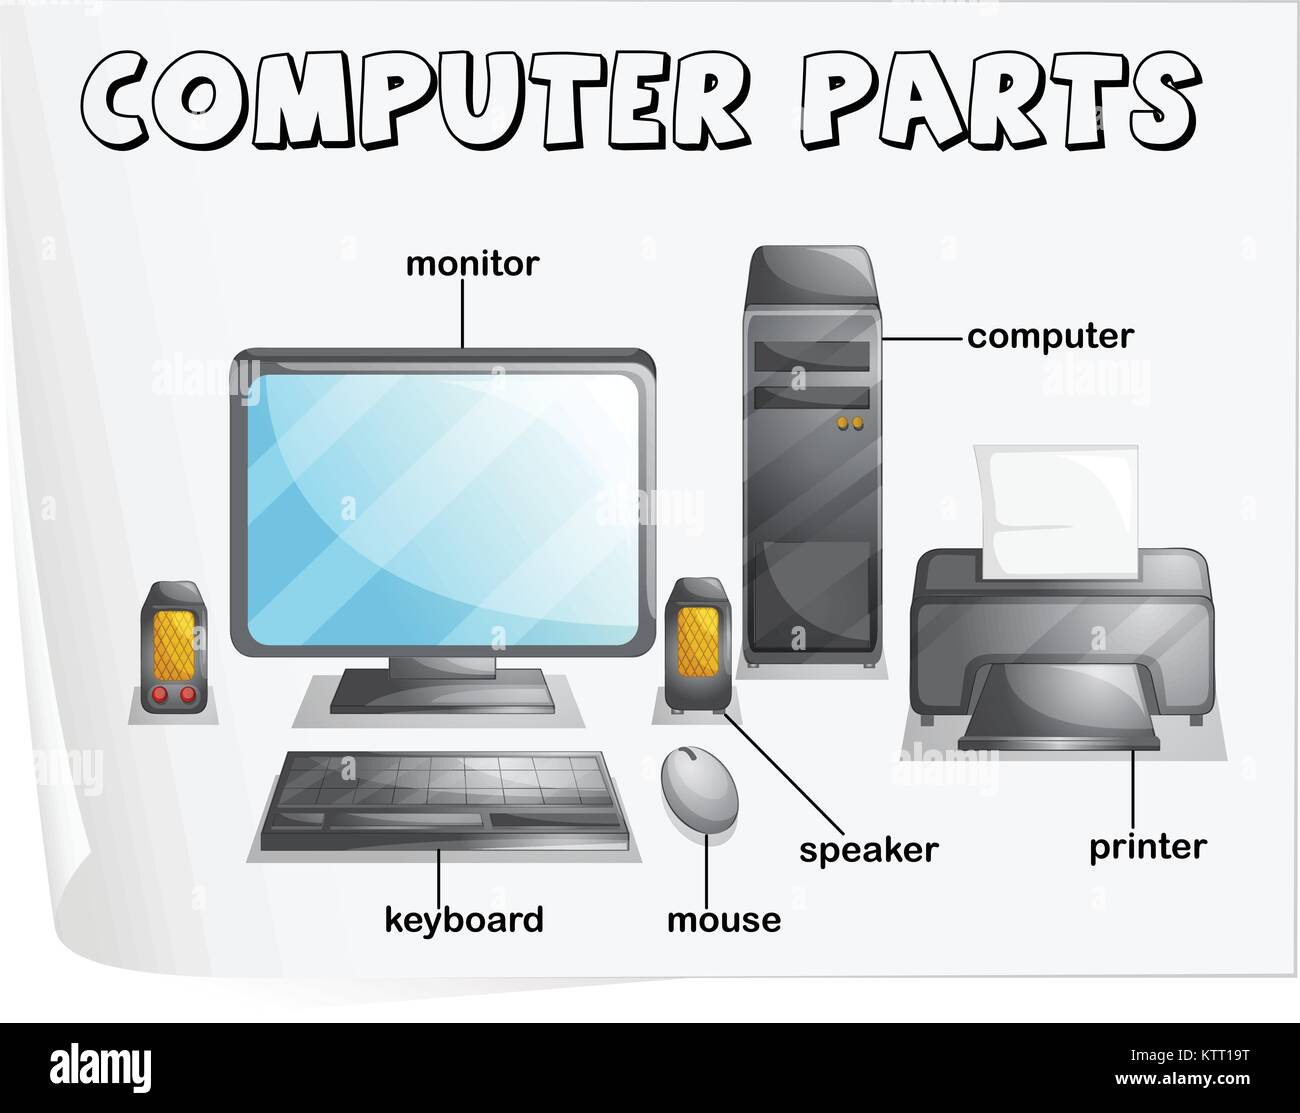 Illustration Of Computer Parts Worksheet Stock Vector Art Amp Illustration Vector Image